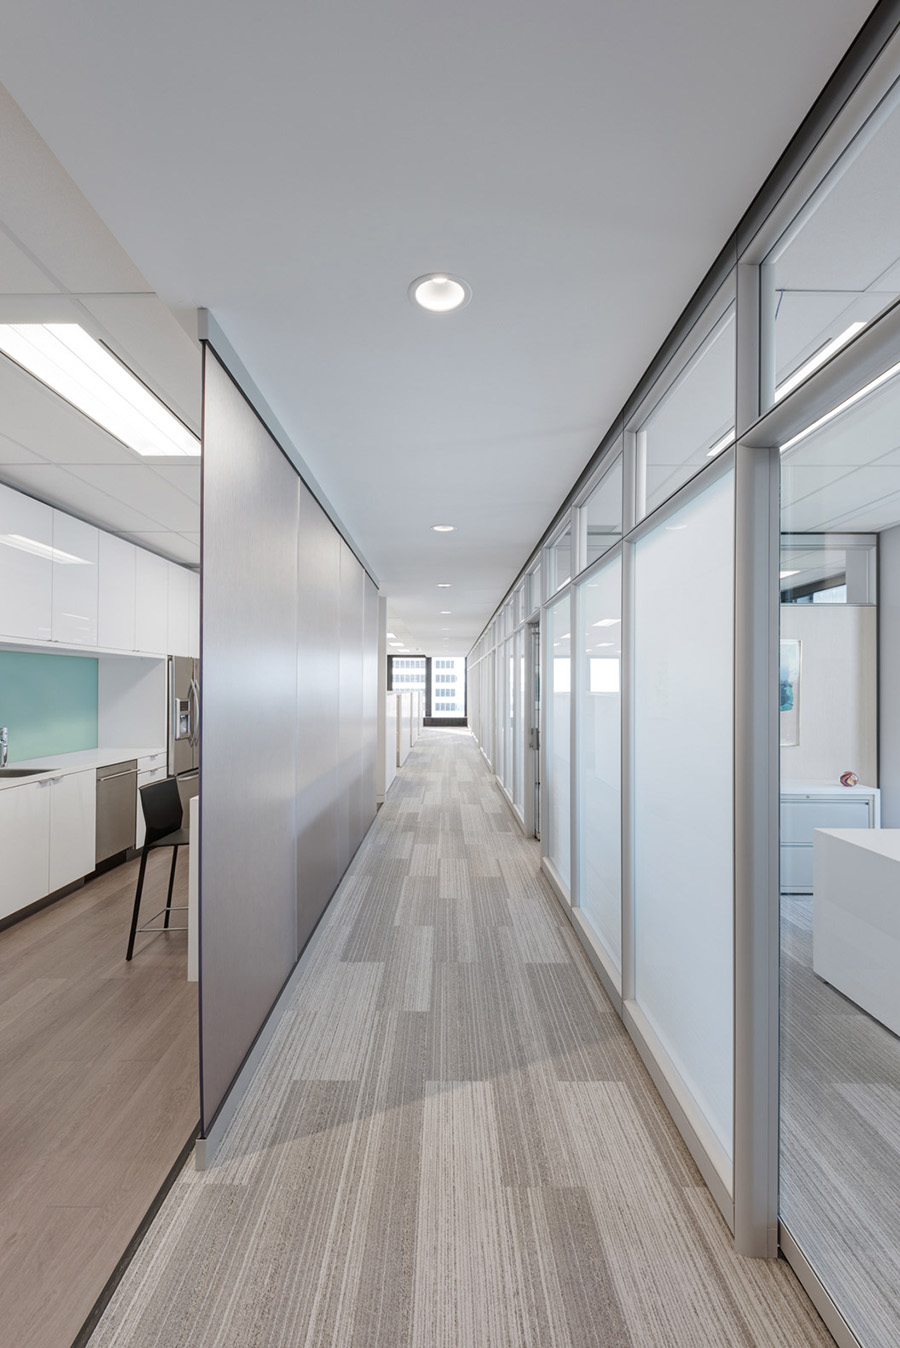 Bright office hallway with translucent glass walls to allow for natural lighting